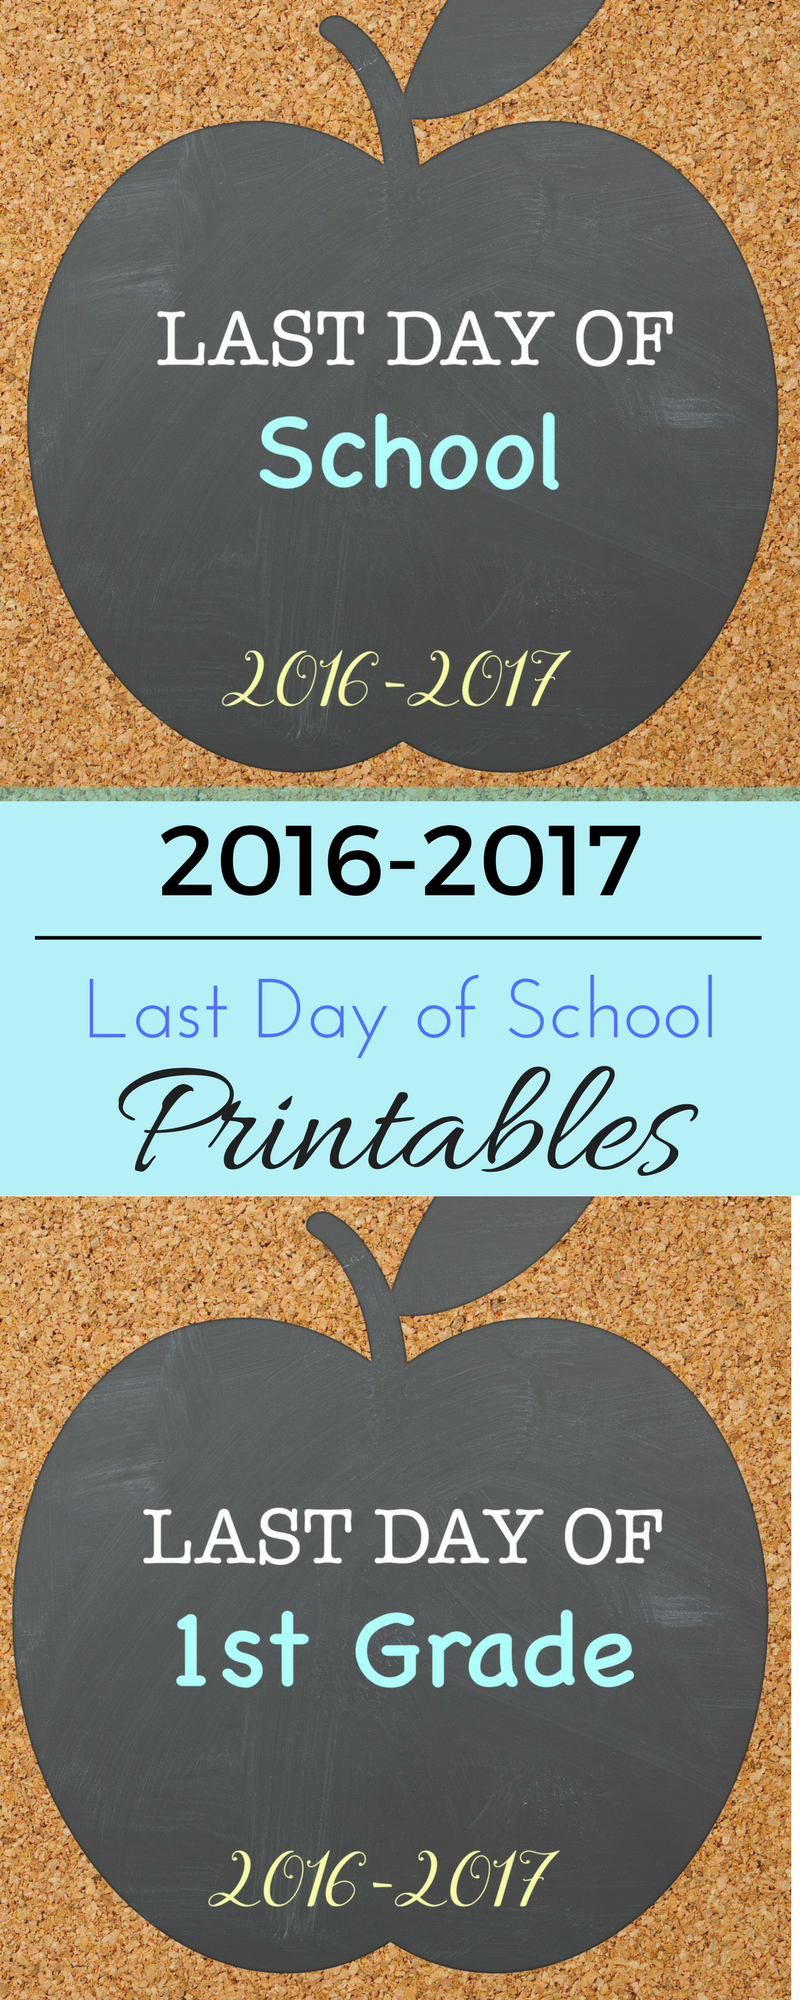 2016-2017 Last Day of School Printables: Grades Pre-K - 5th Grade